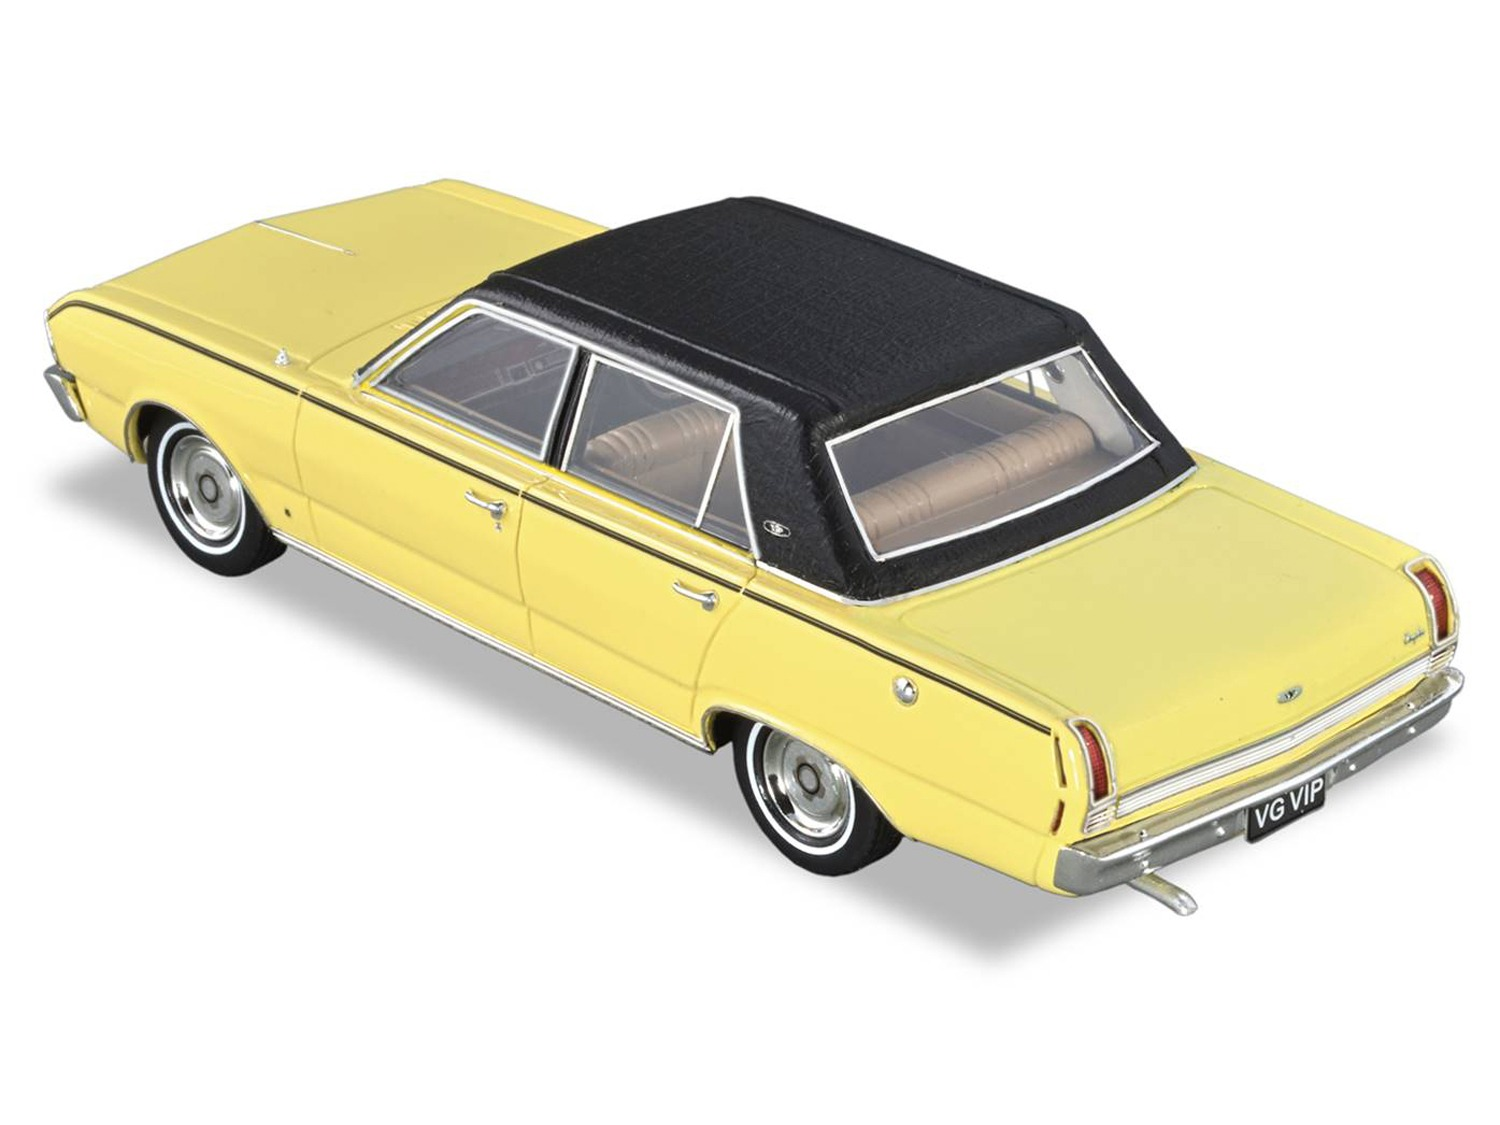 1970 Chrysler VG VIP – Yellow / Black Roof